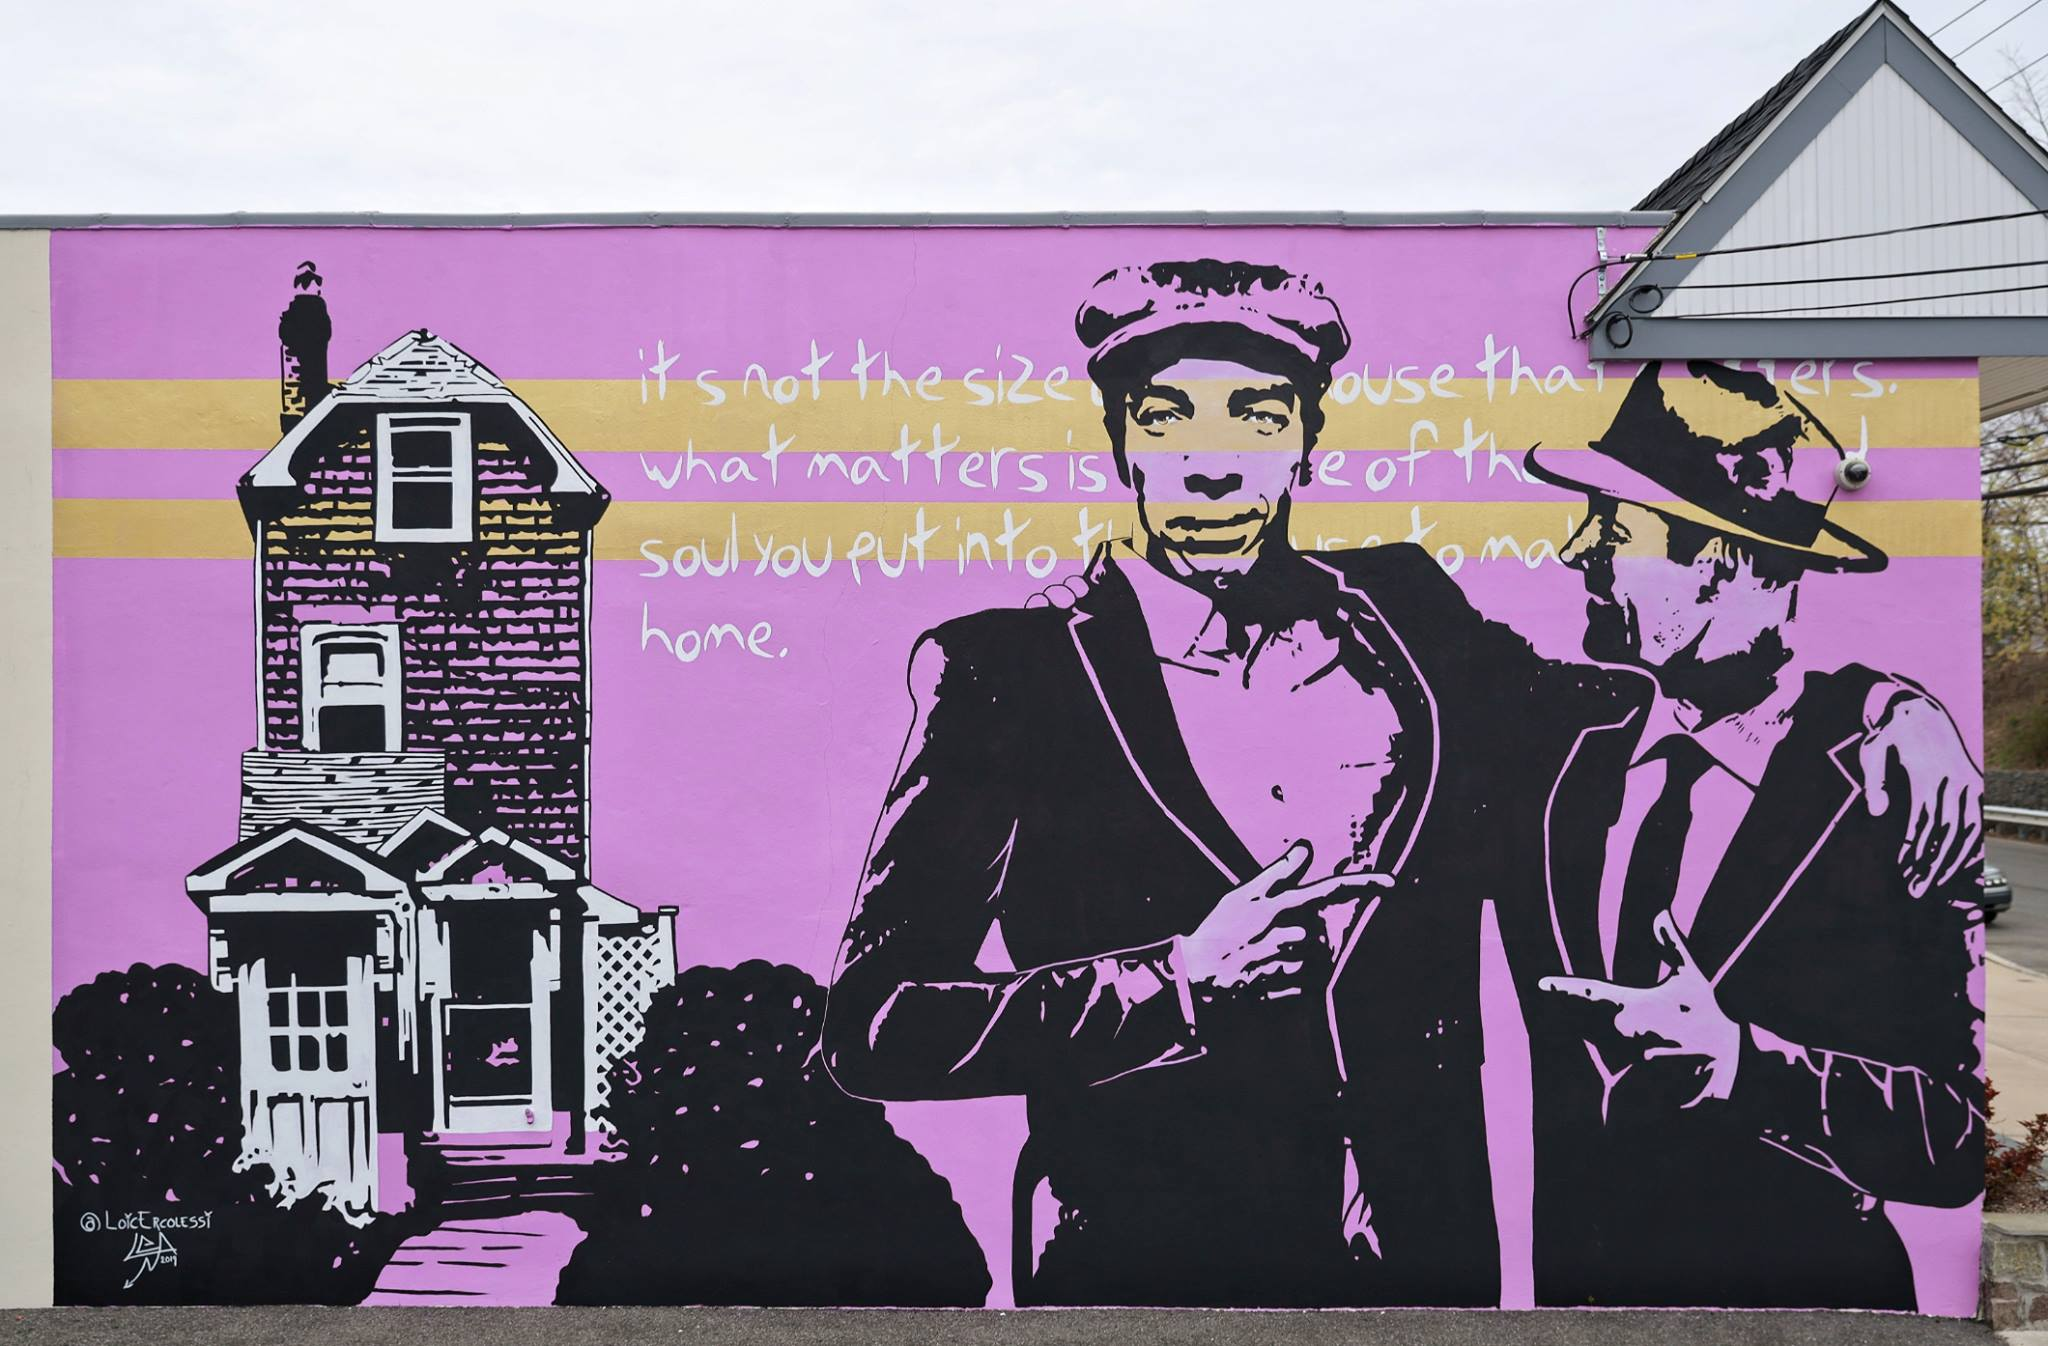 Mamaroneck Historical Murals celebrate the Rich History of the